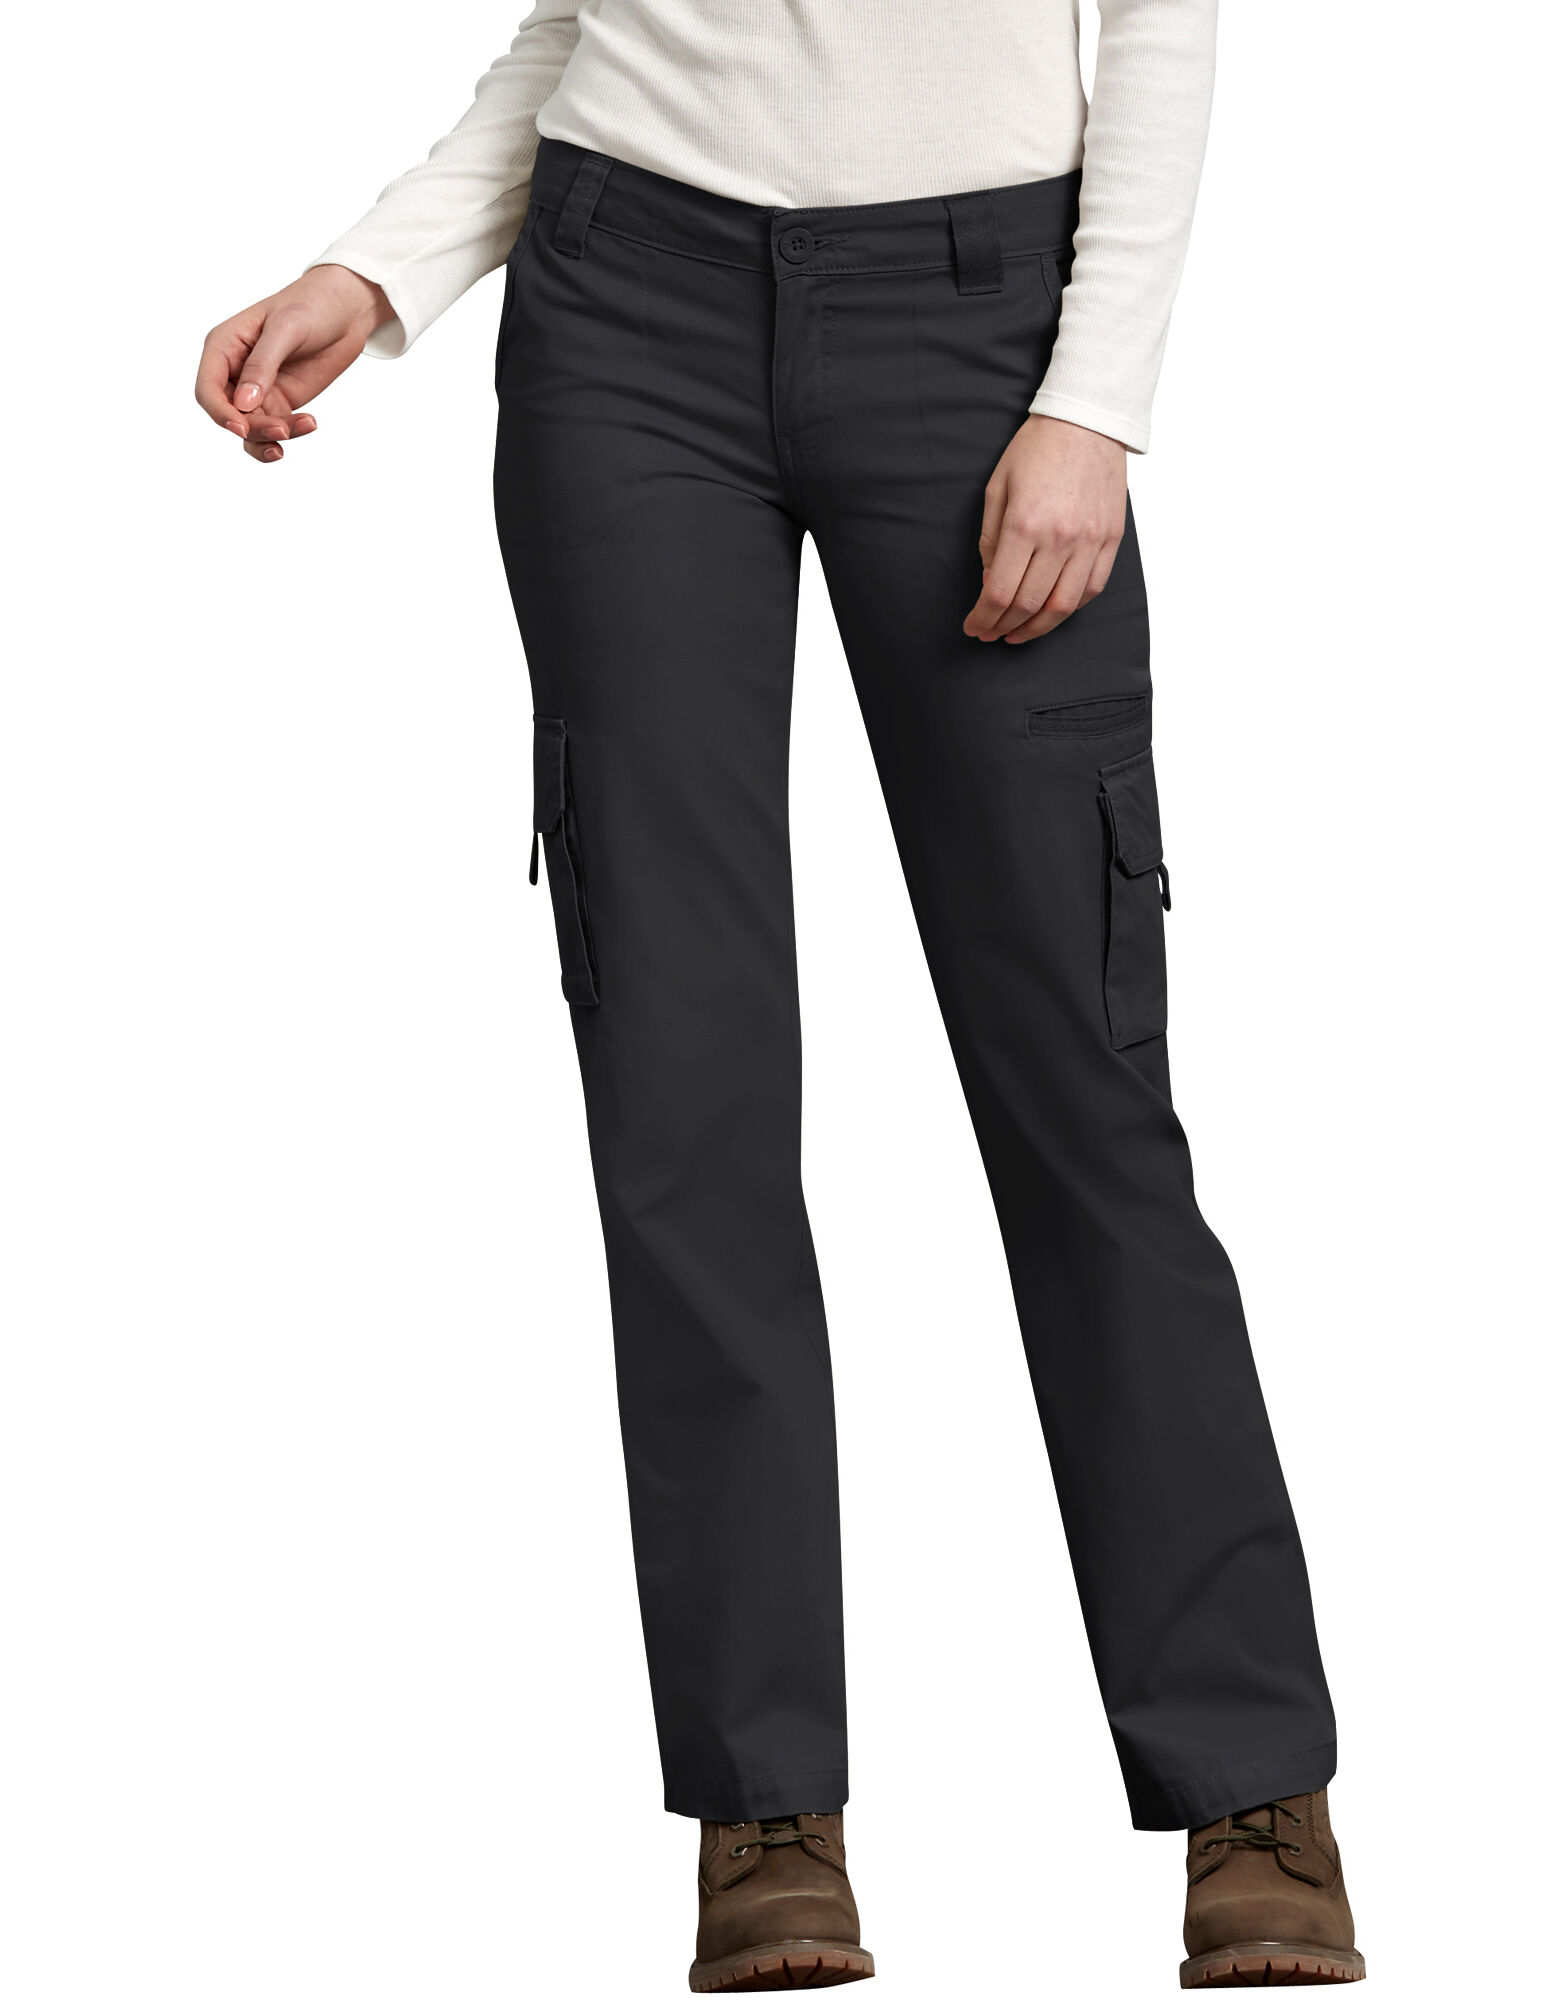 Innovative Details About Fox Racing Womens Transport Skinny Fit Cargo Pants 2013